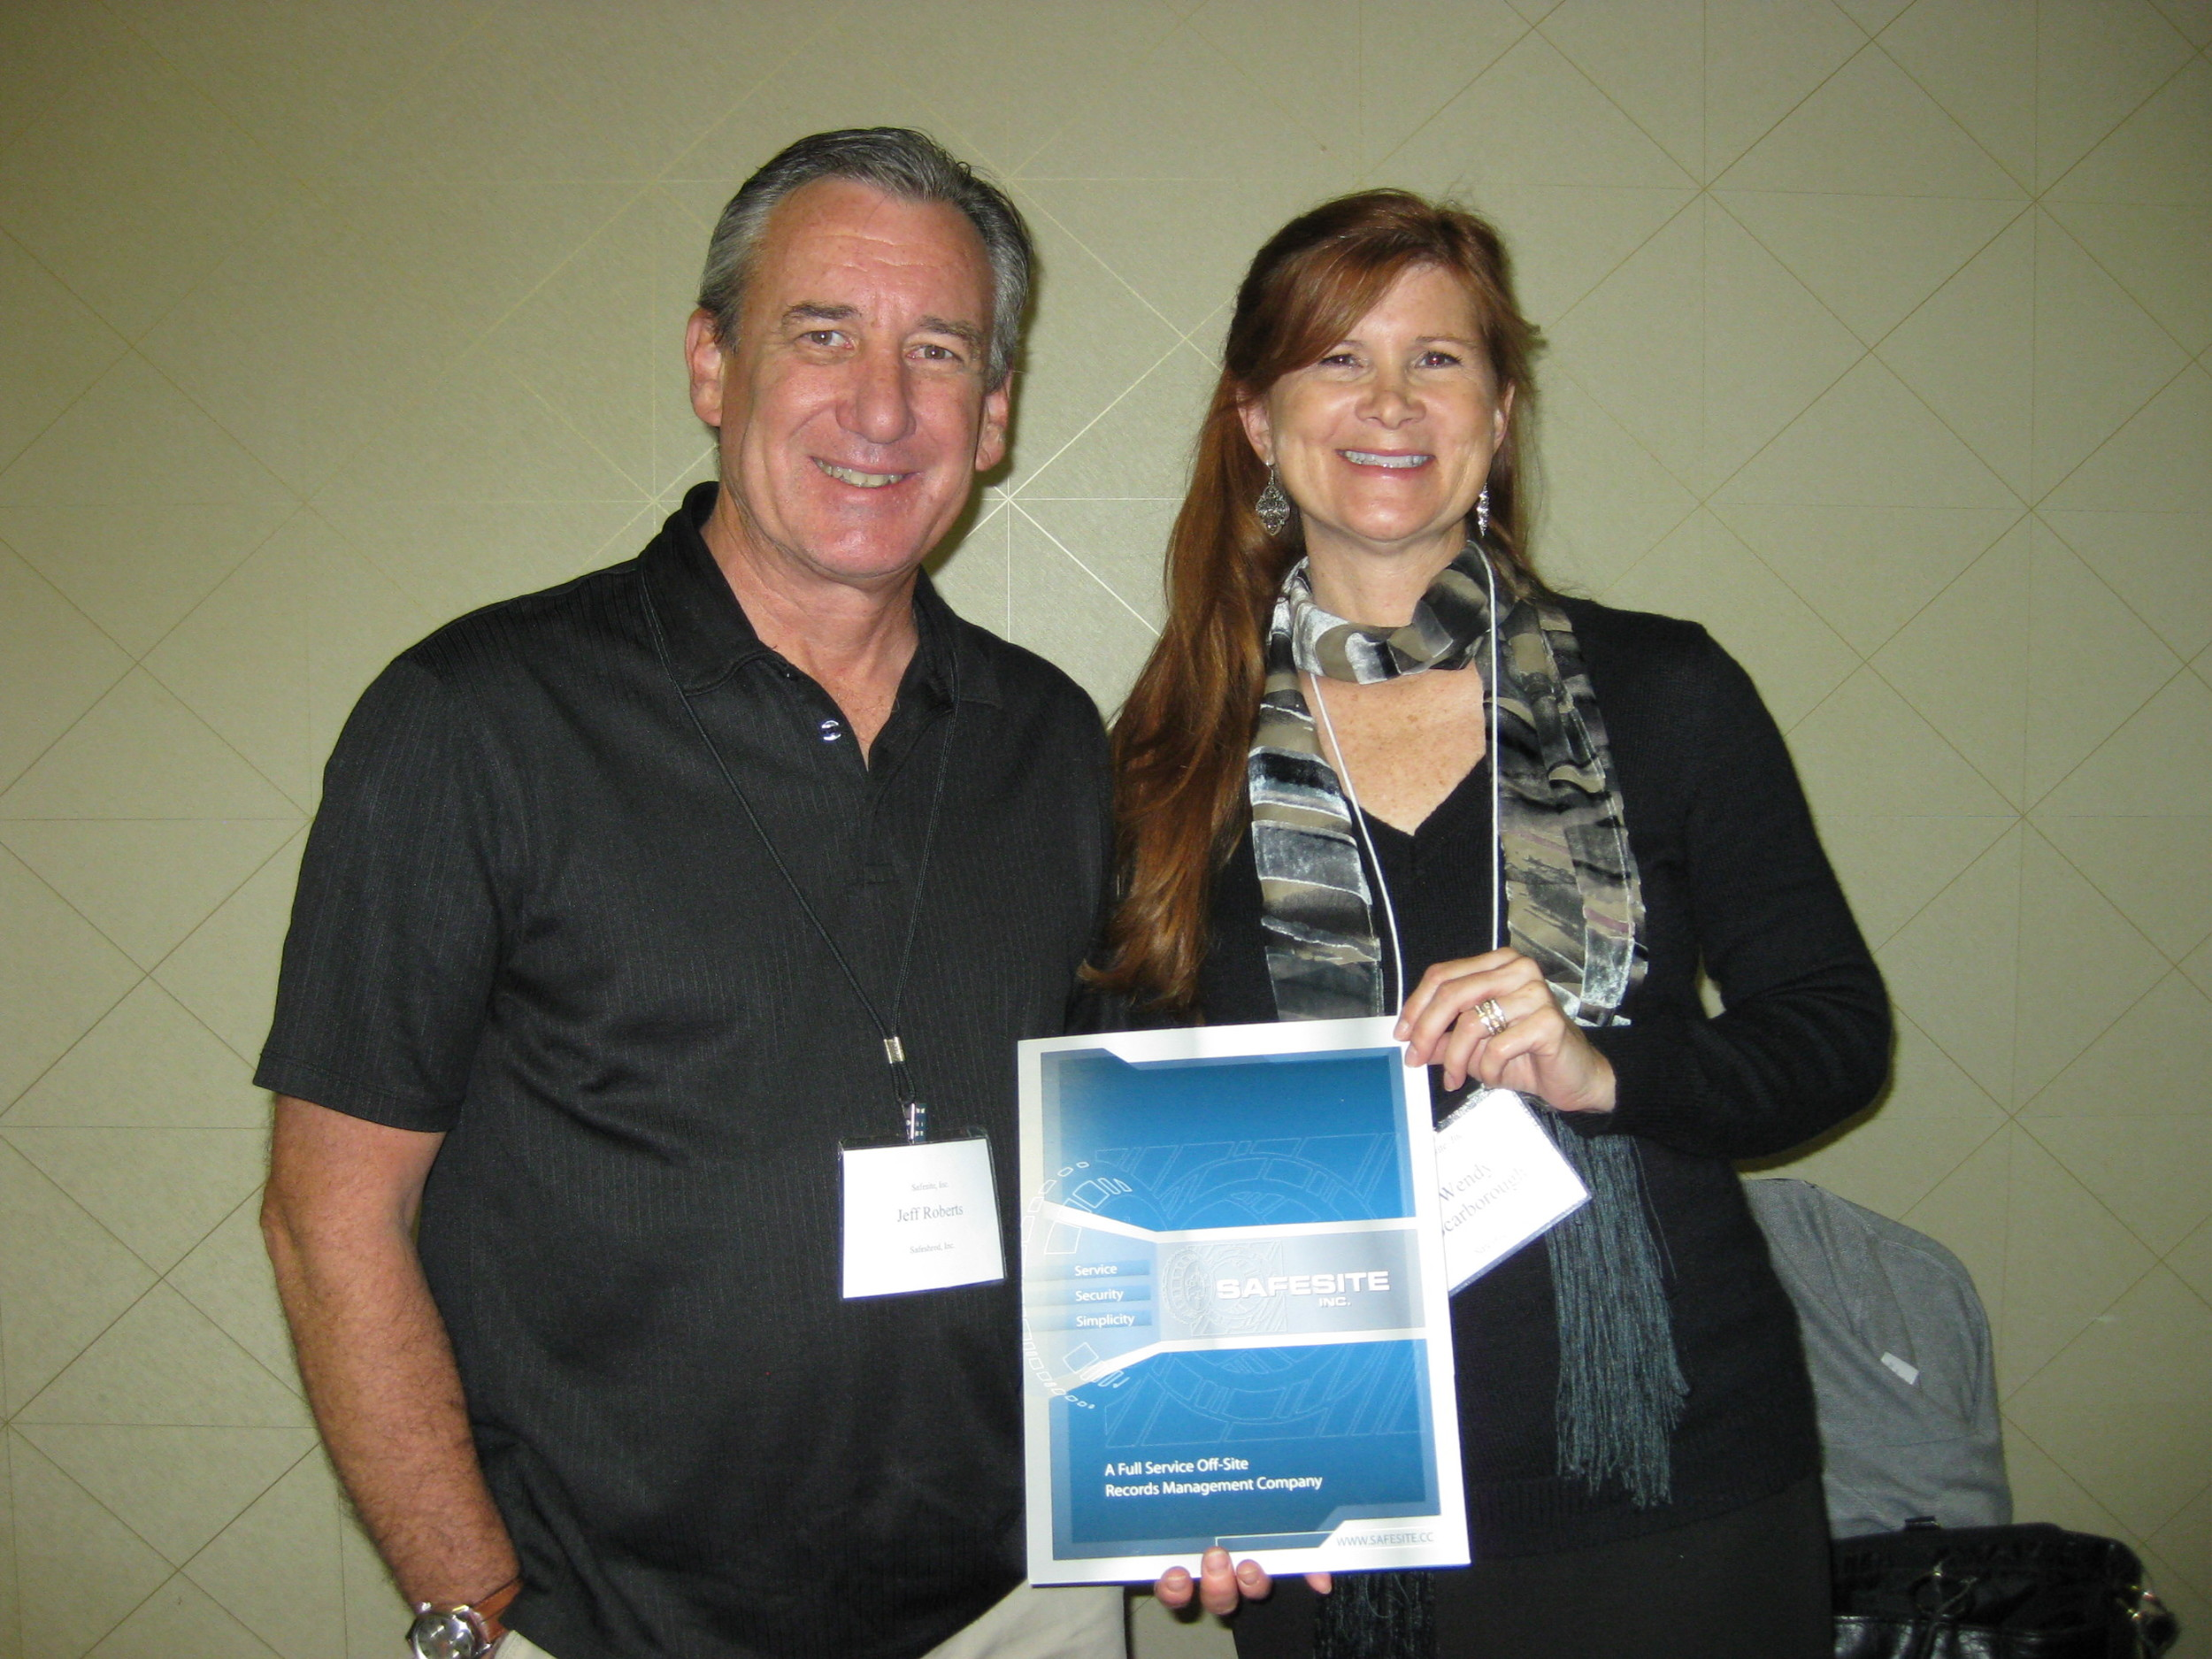 SafeSite - Jeff Roberts and Wendy Scarborough.JPG